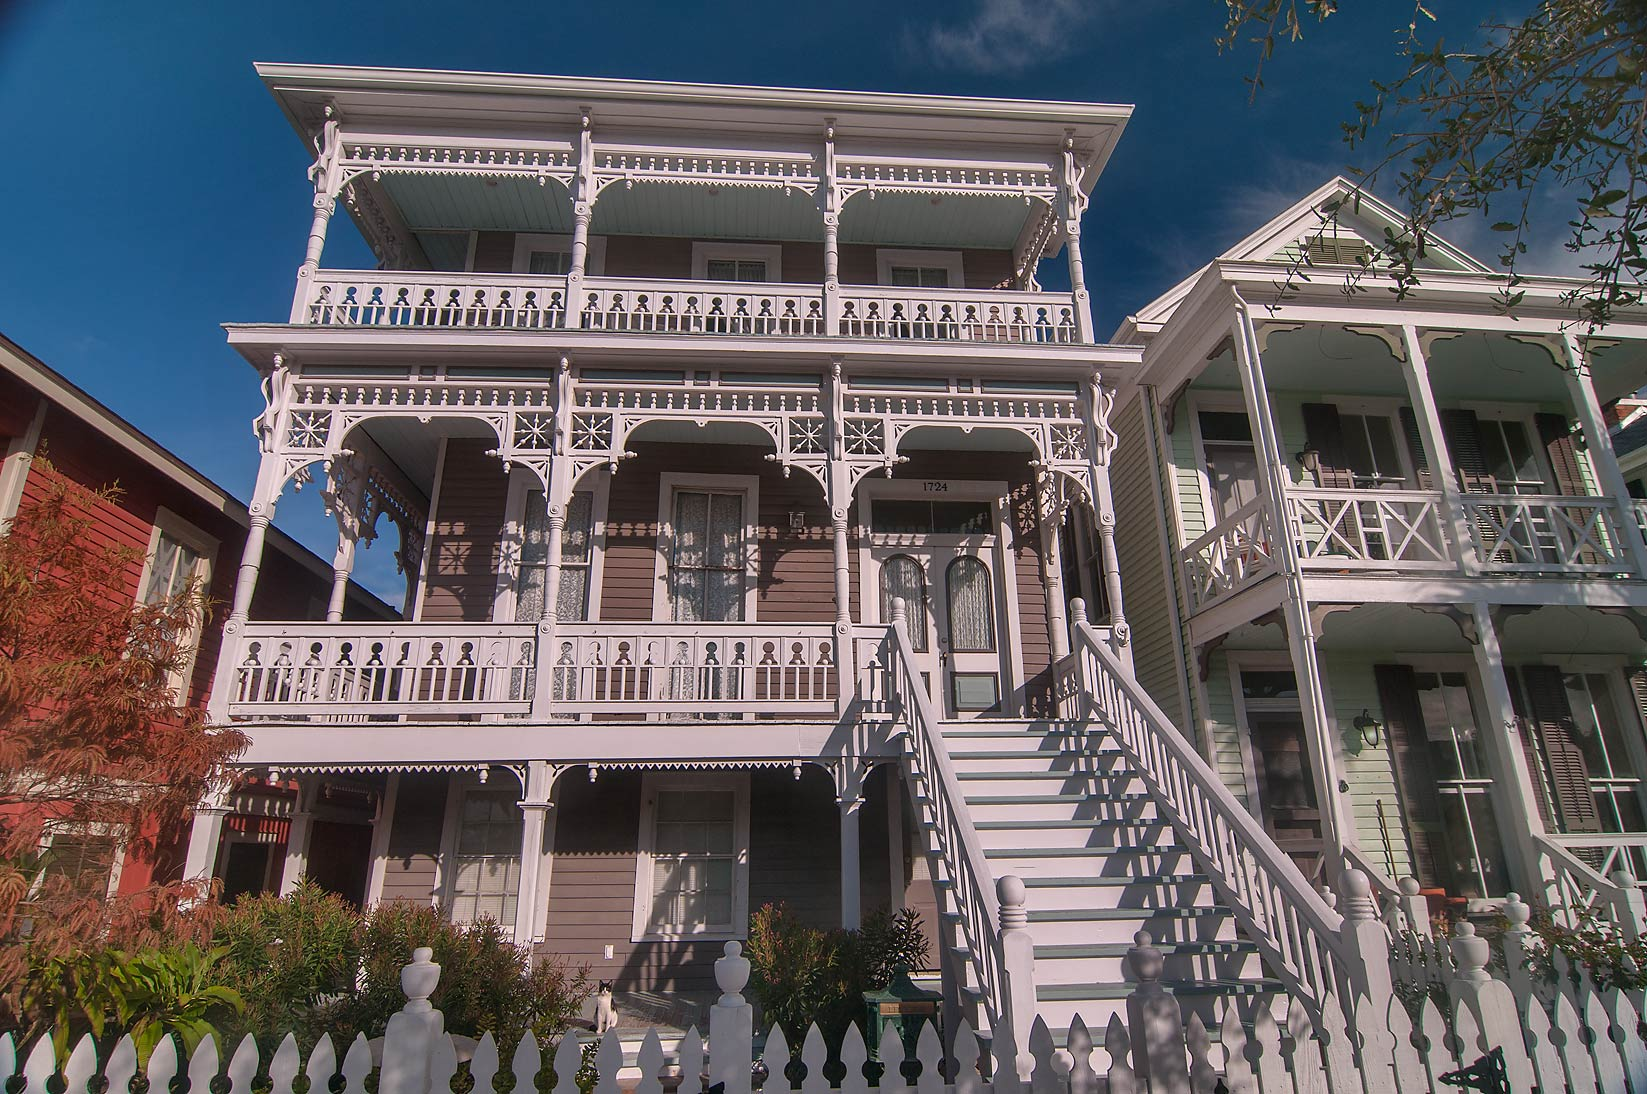 1728 Ball St. in East End Historic District. Galveston, Texas